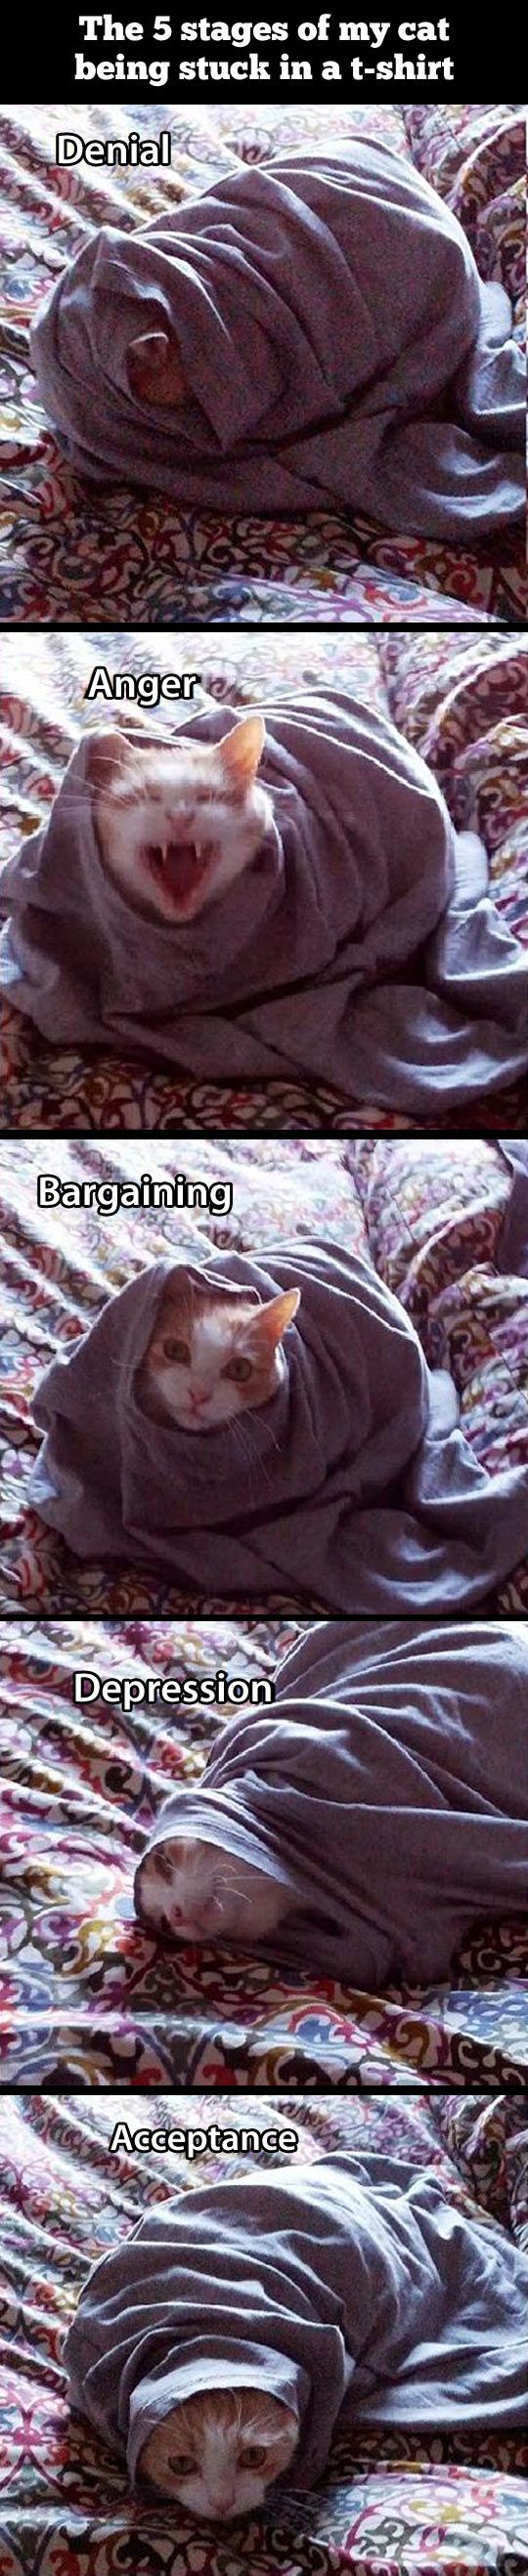 The five stages of a cat stuck in a t-shirt.